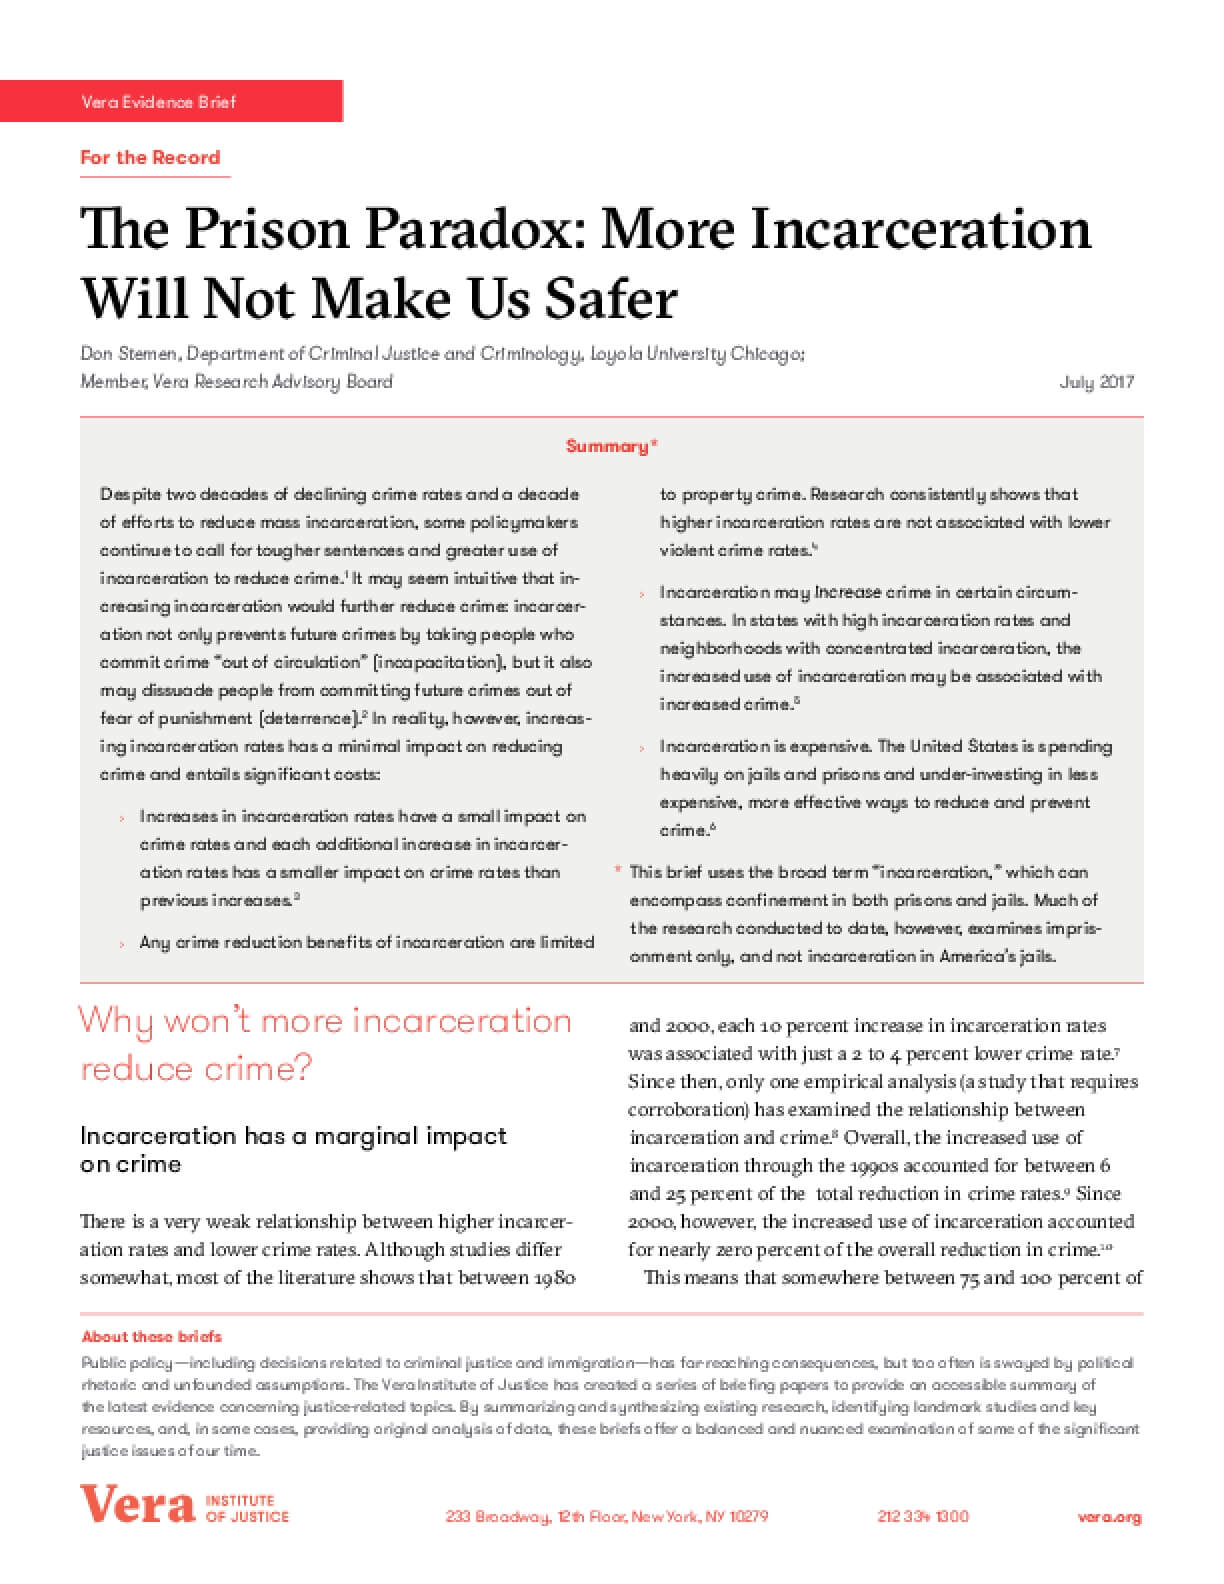 The Prison Paradox: More Incarceration Will Not Make Us Safer